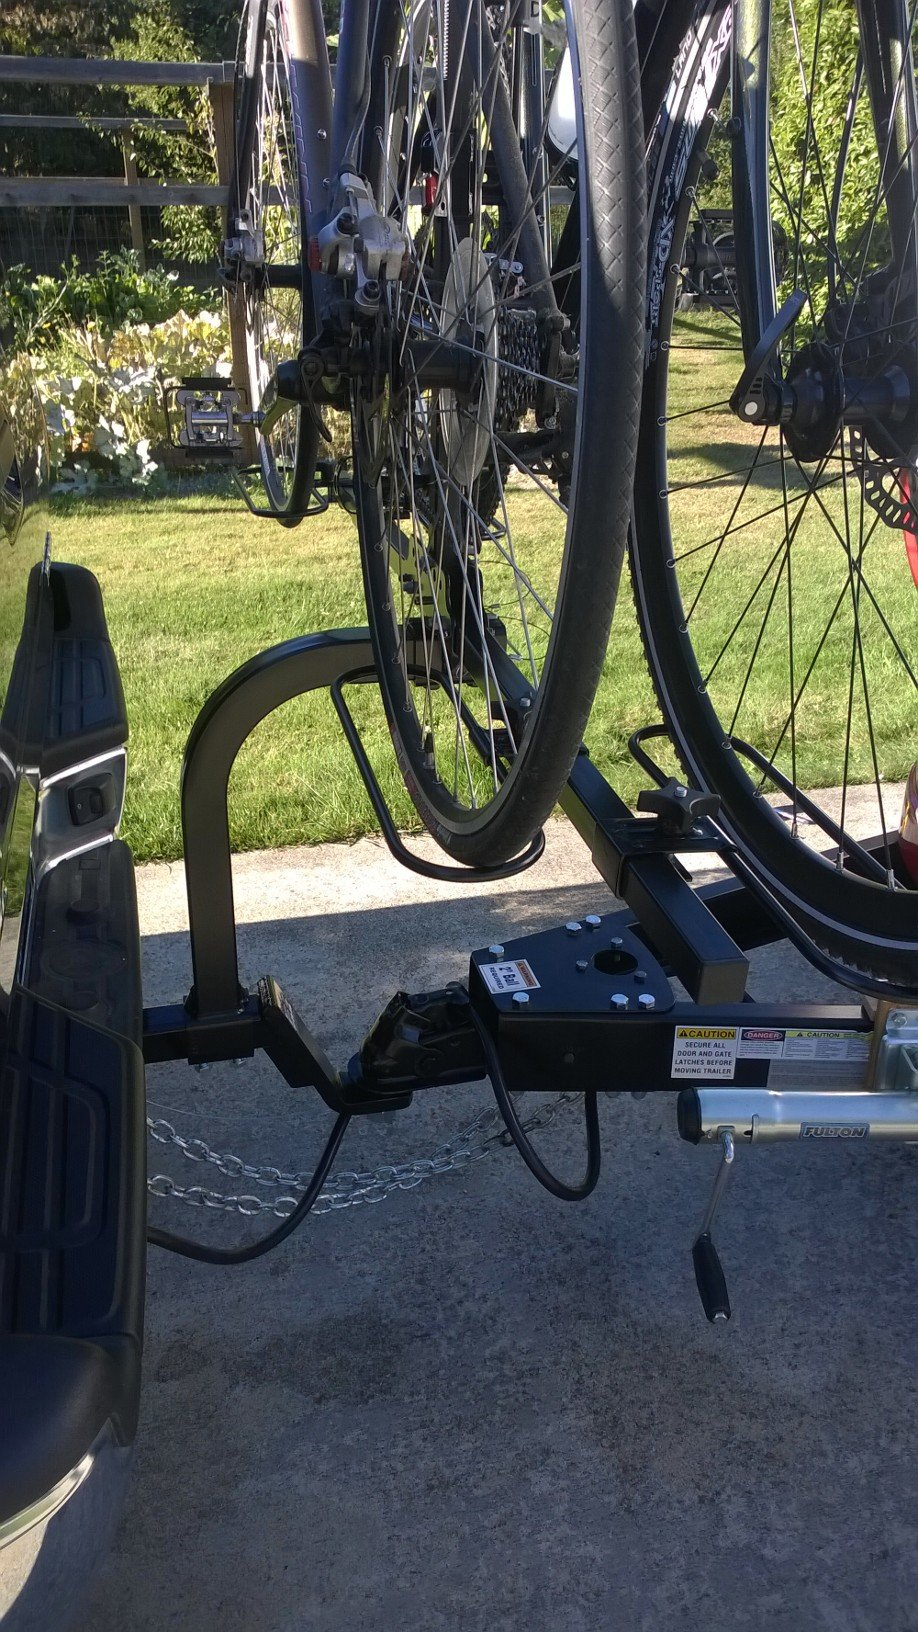 Swagman Rv Bike Rack On 2 Quot Extended Towing Bar With T B